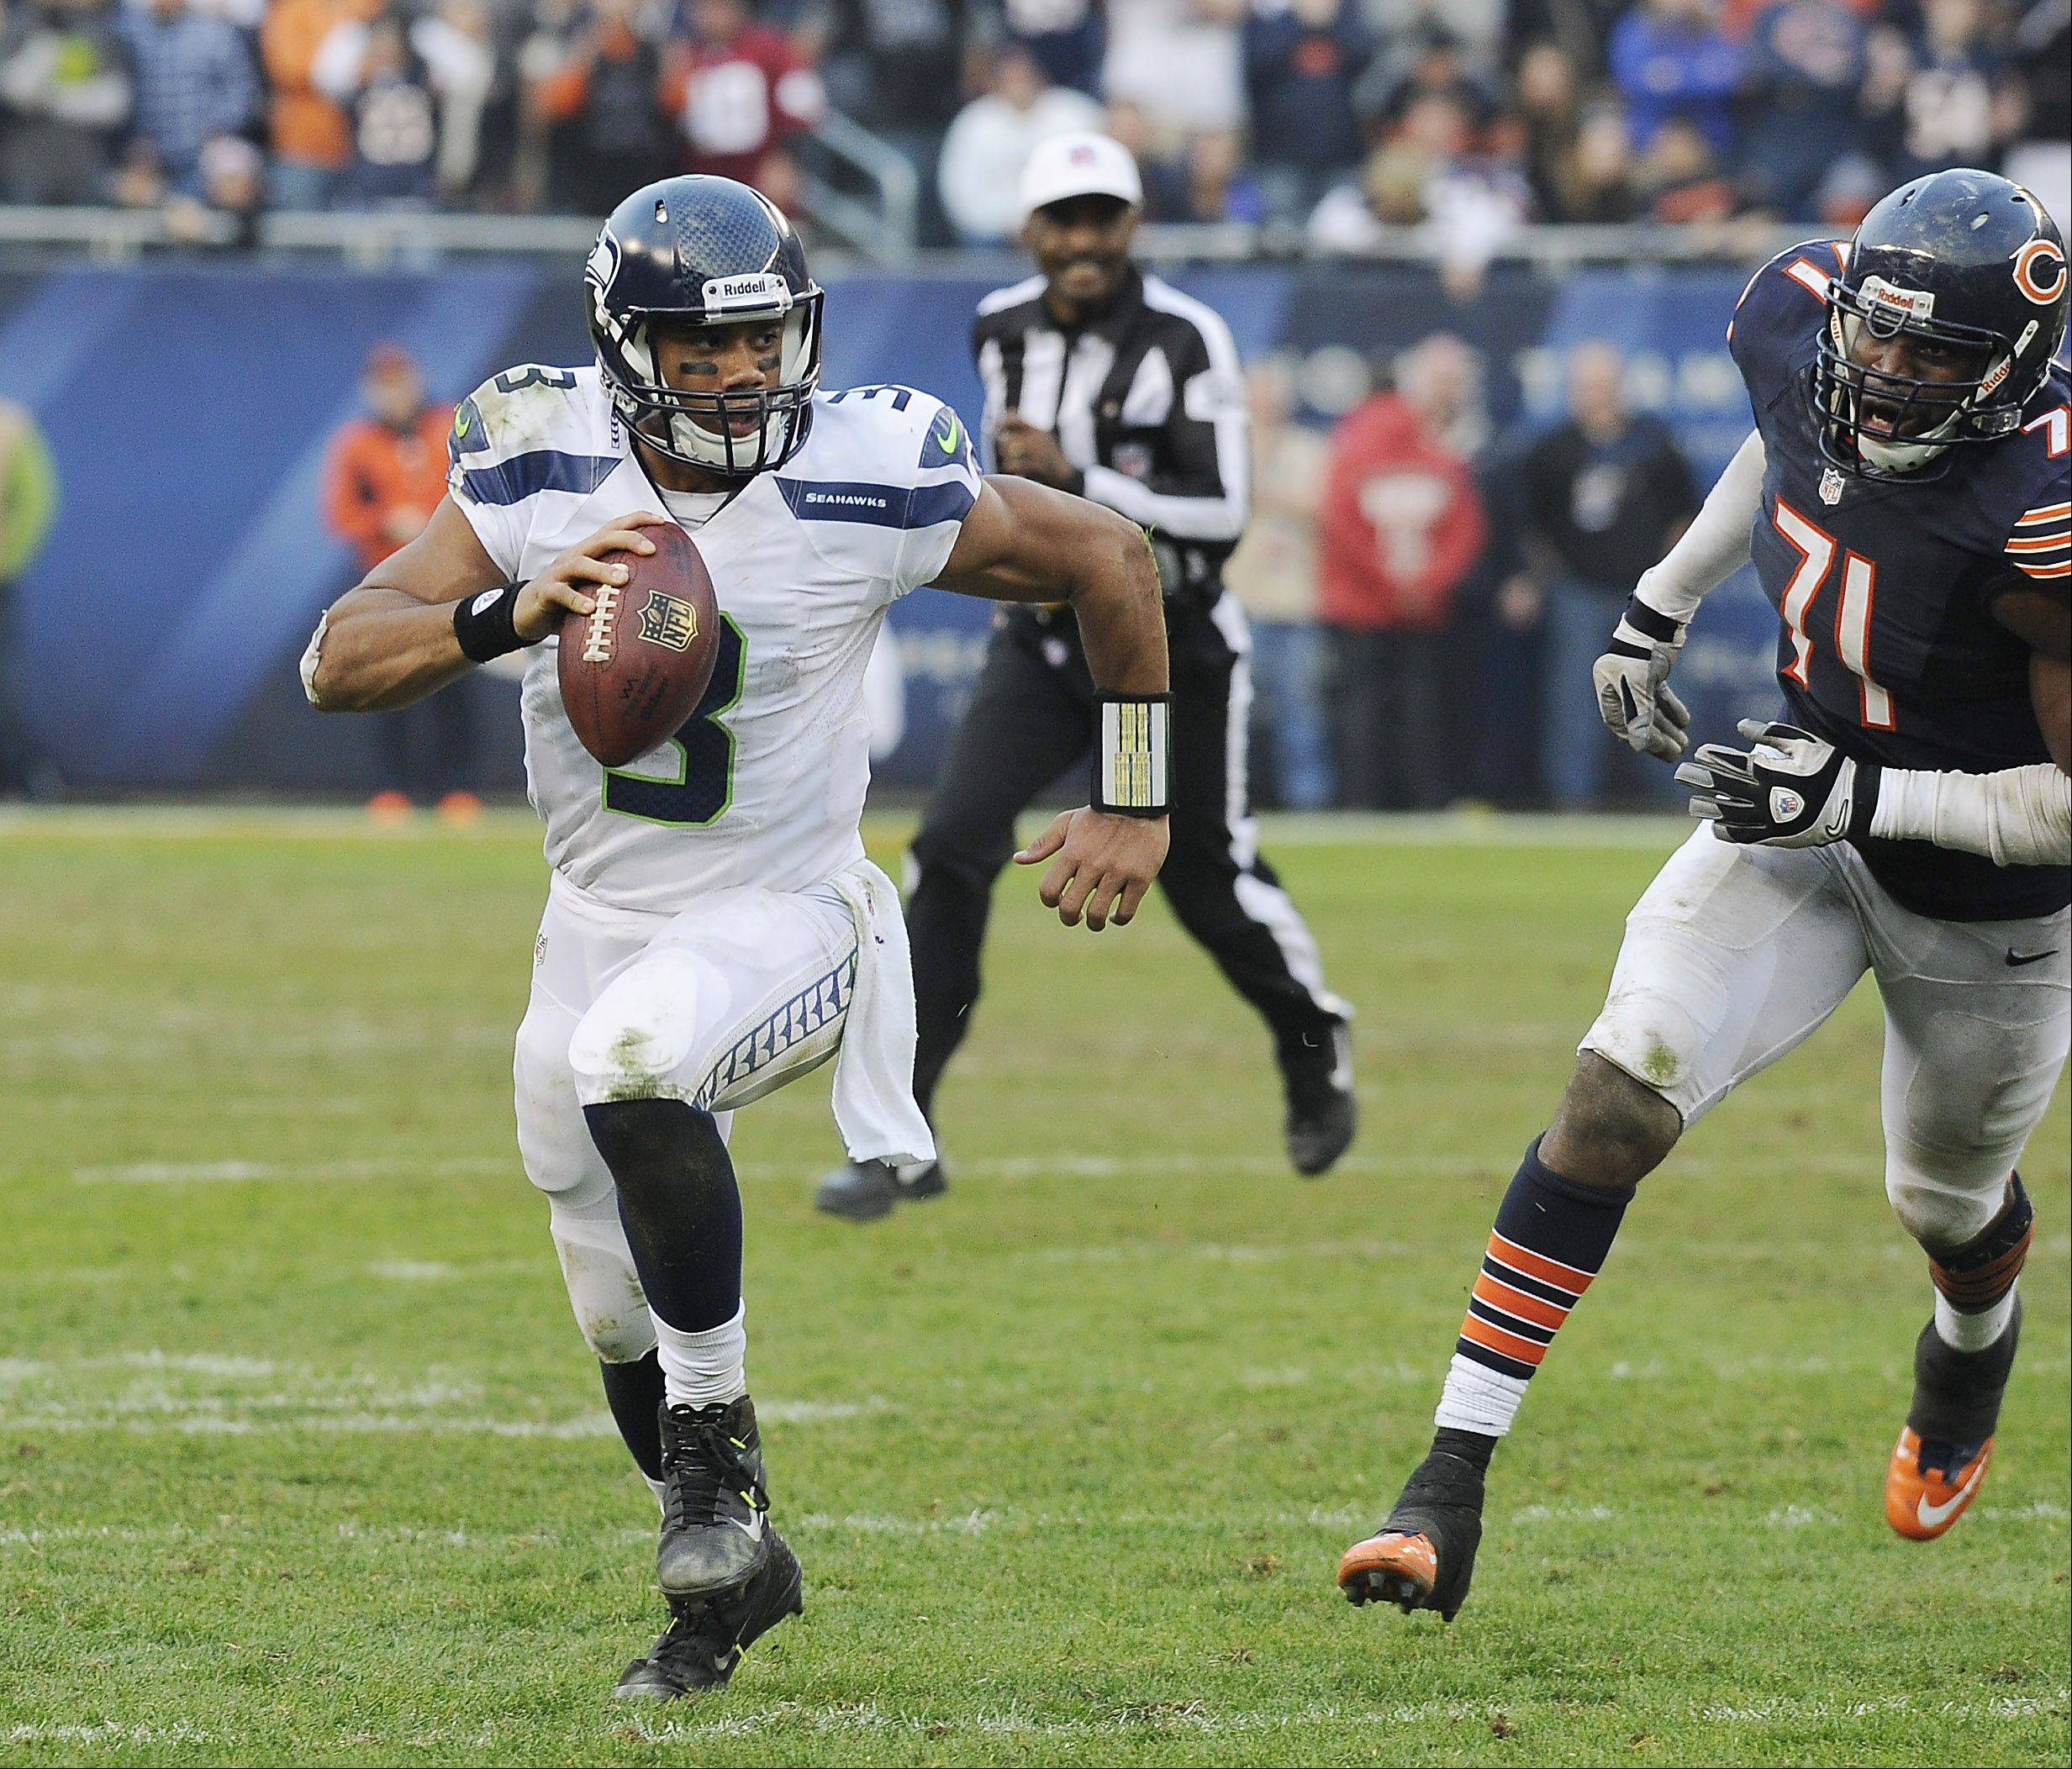 Seahawks quarterback Russell Wilson on the run in the 4th from Bears Israel Idonije as the Bears fall to the Seahawks in overtime 23-17 at Soldier Field in Chicago.